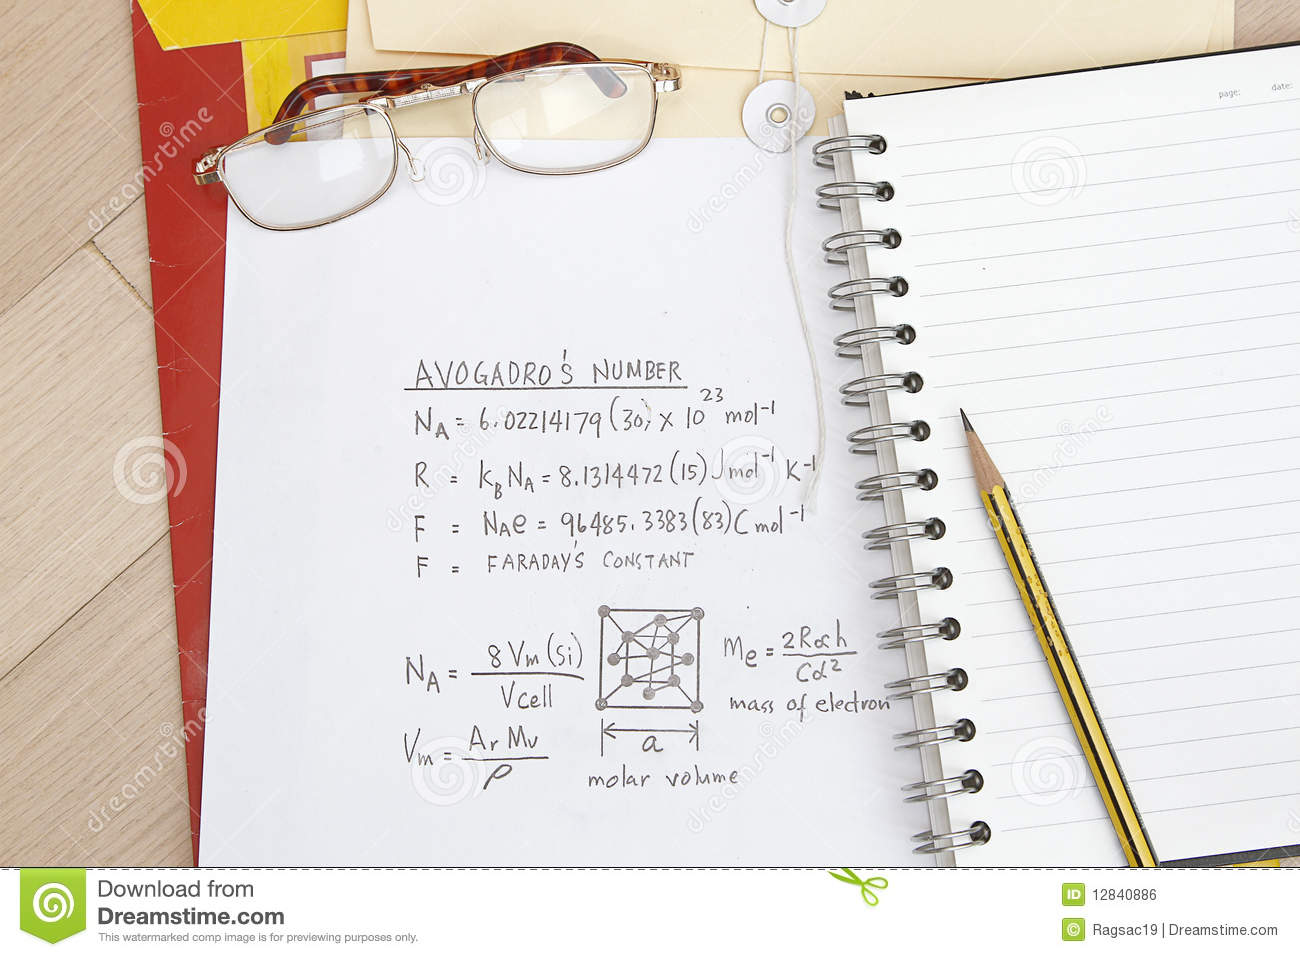 Avogadros Number Royalty Free Stock Image